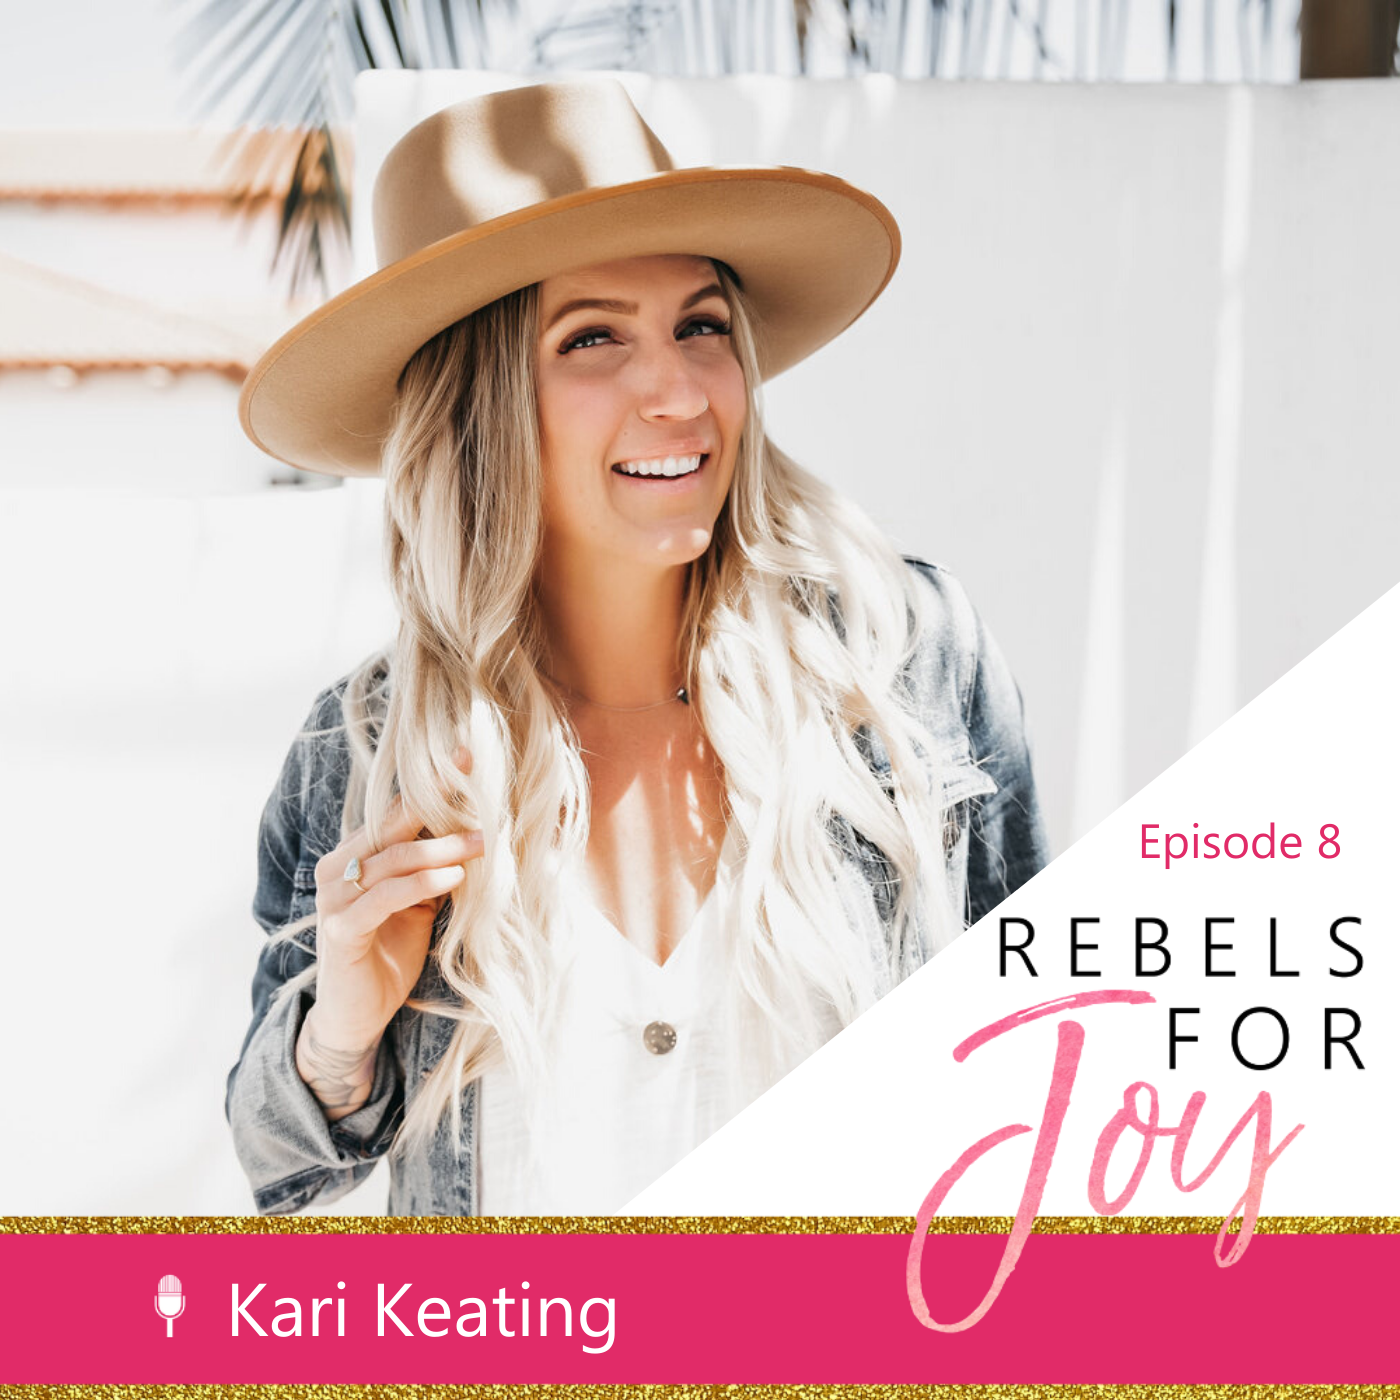 Episode 8: Walking in your purpose, on purpose with Kari Keating